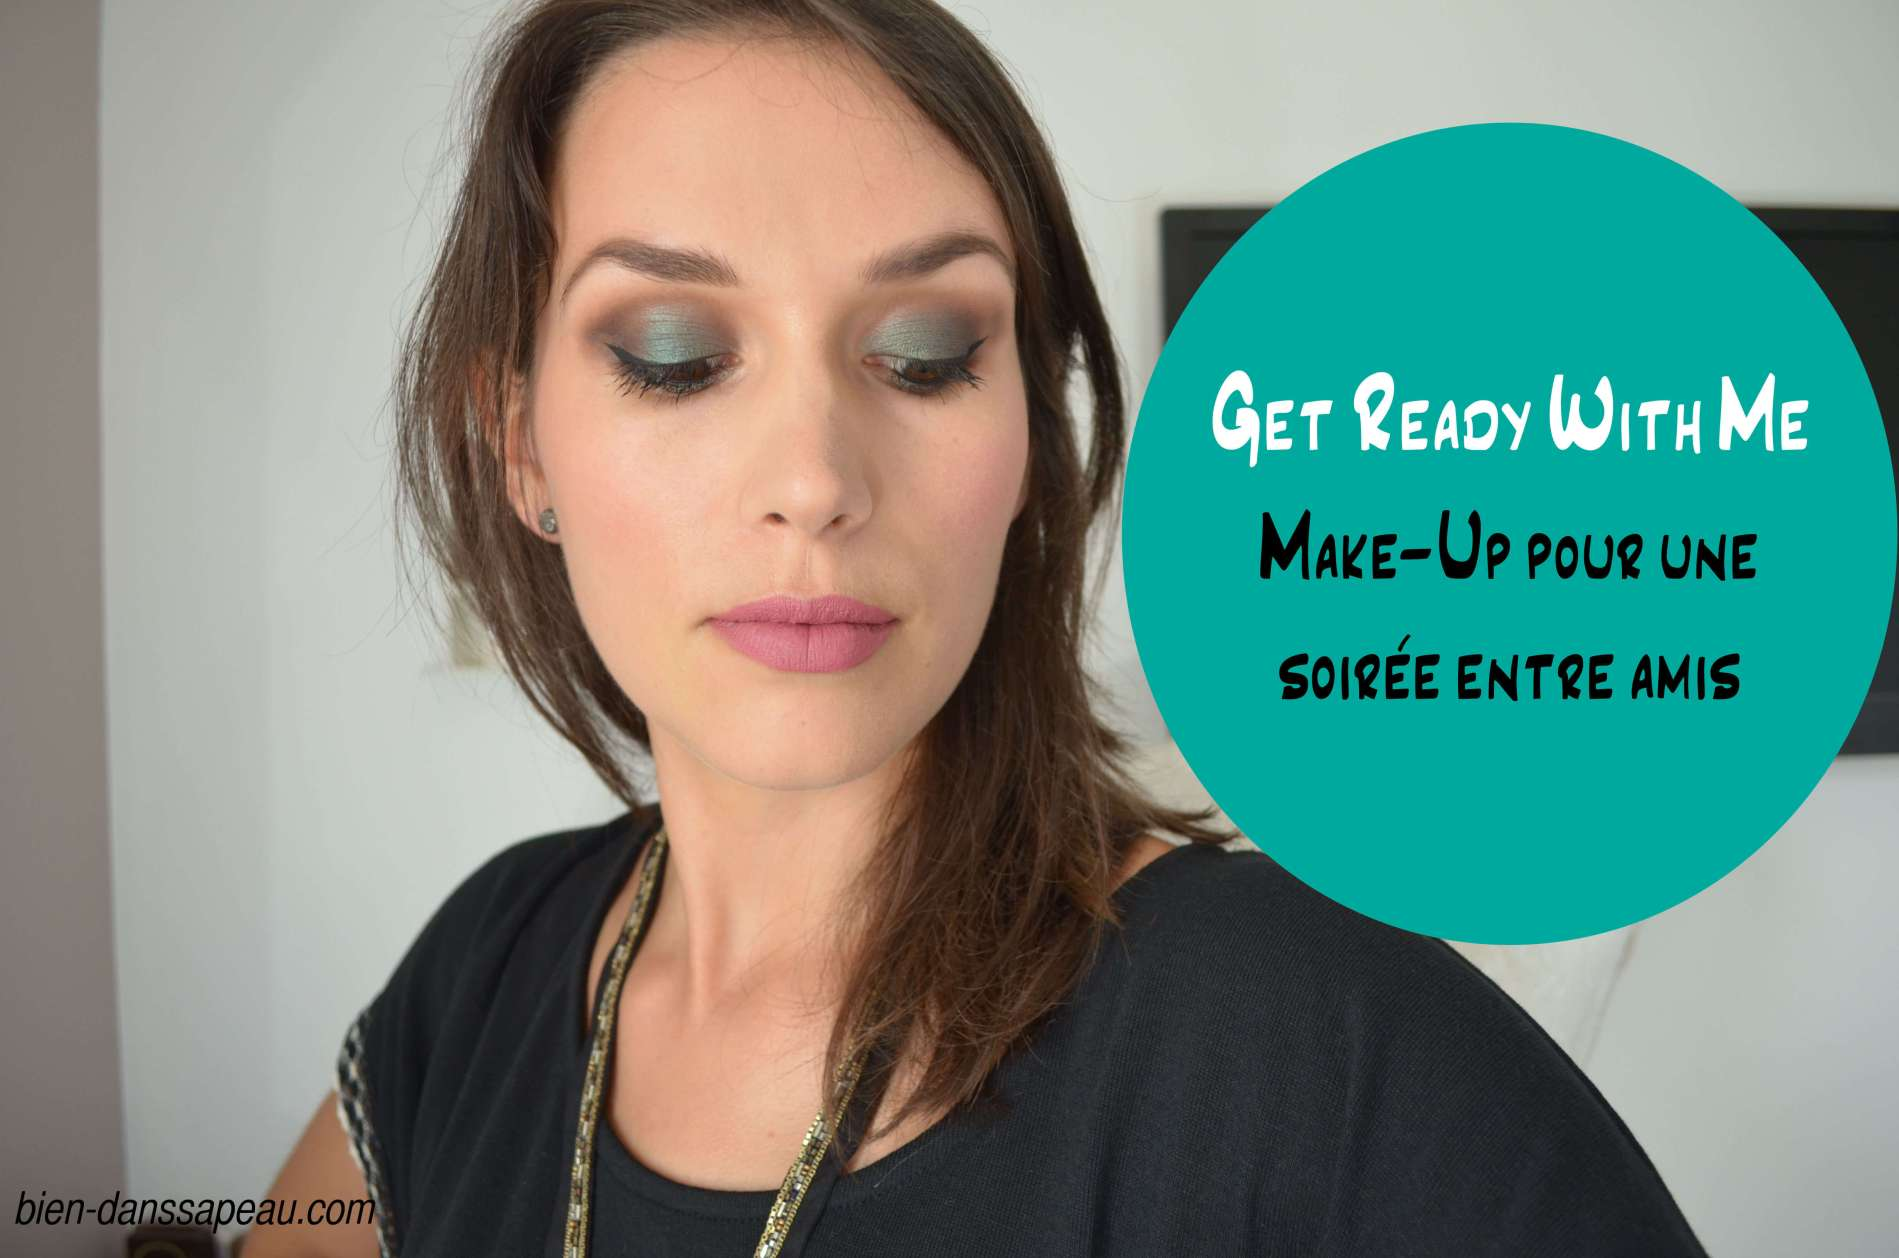 get ready with me make-up soirée entre amis